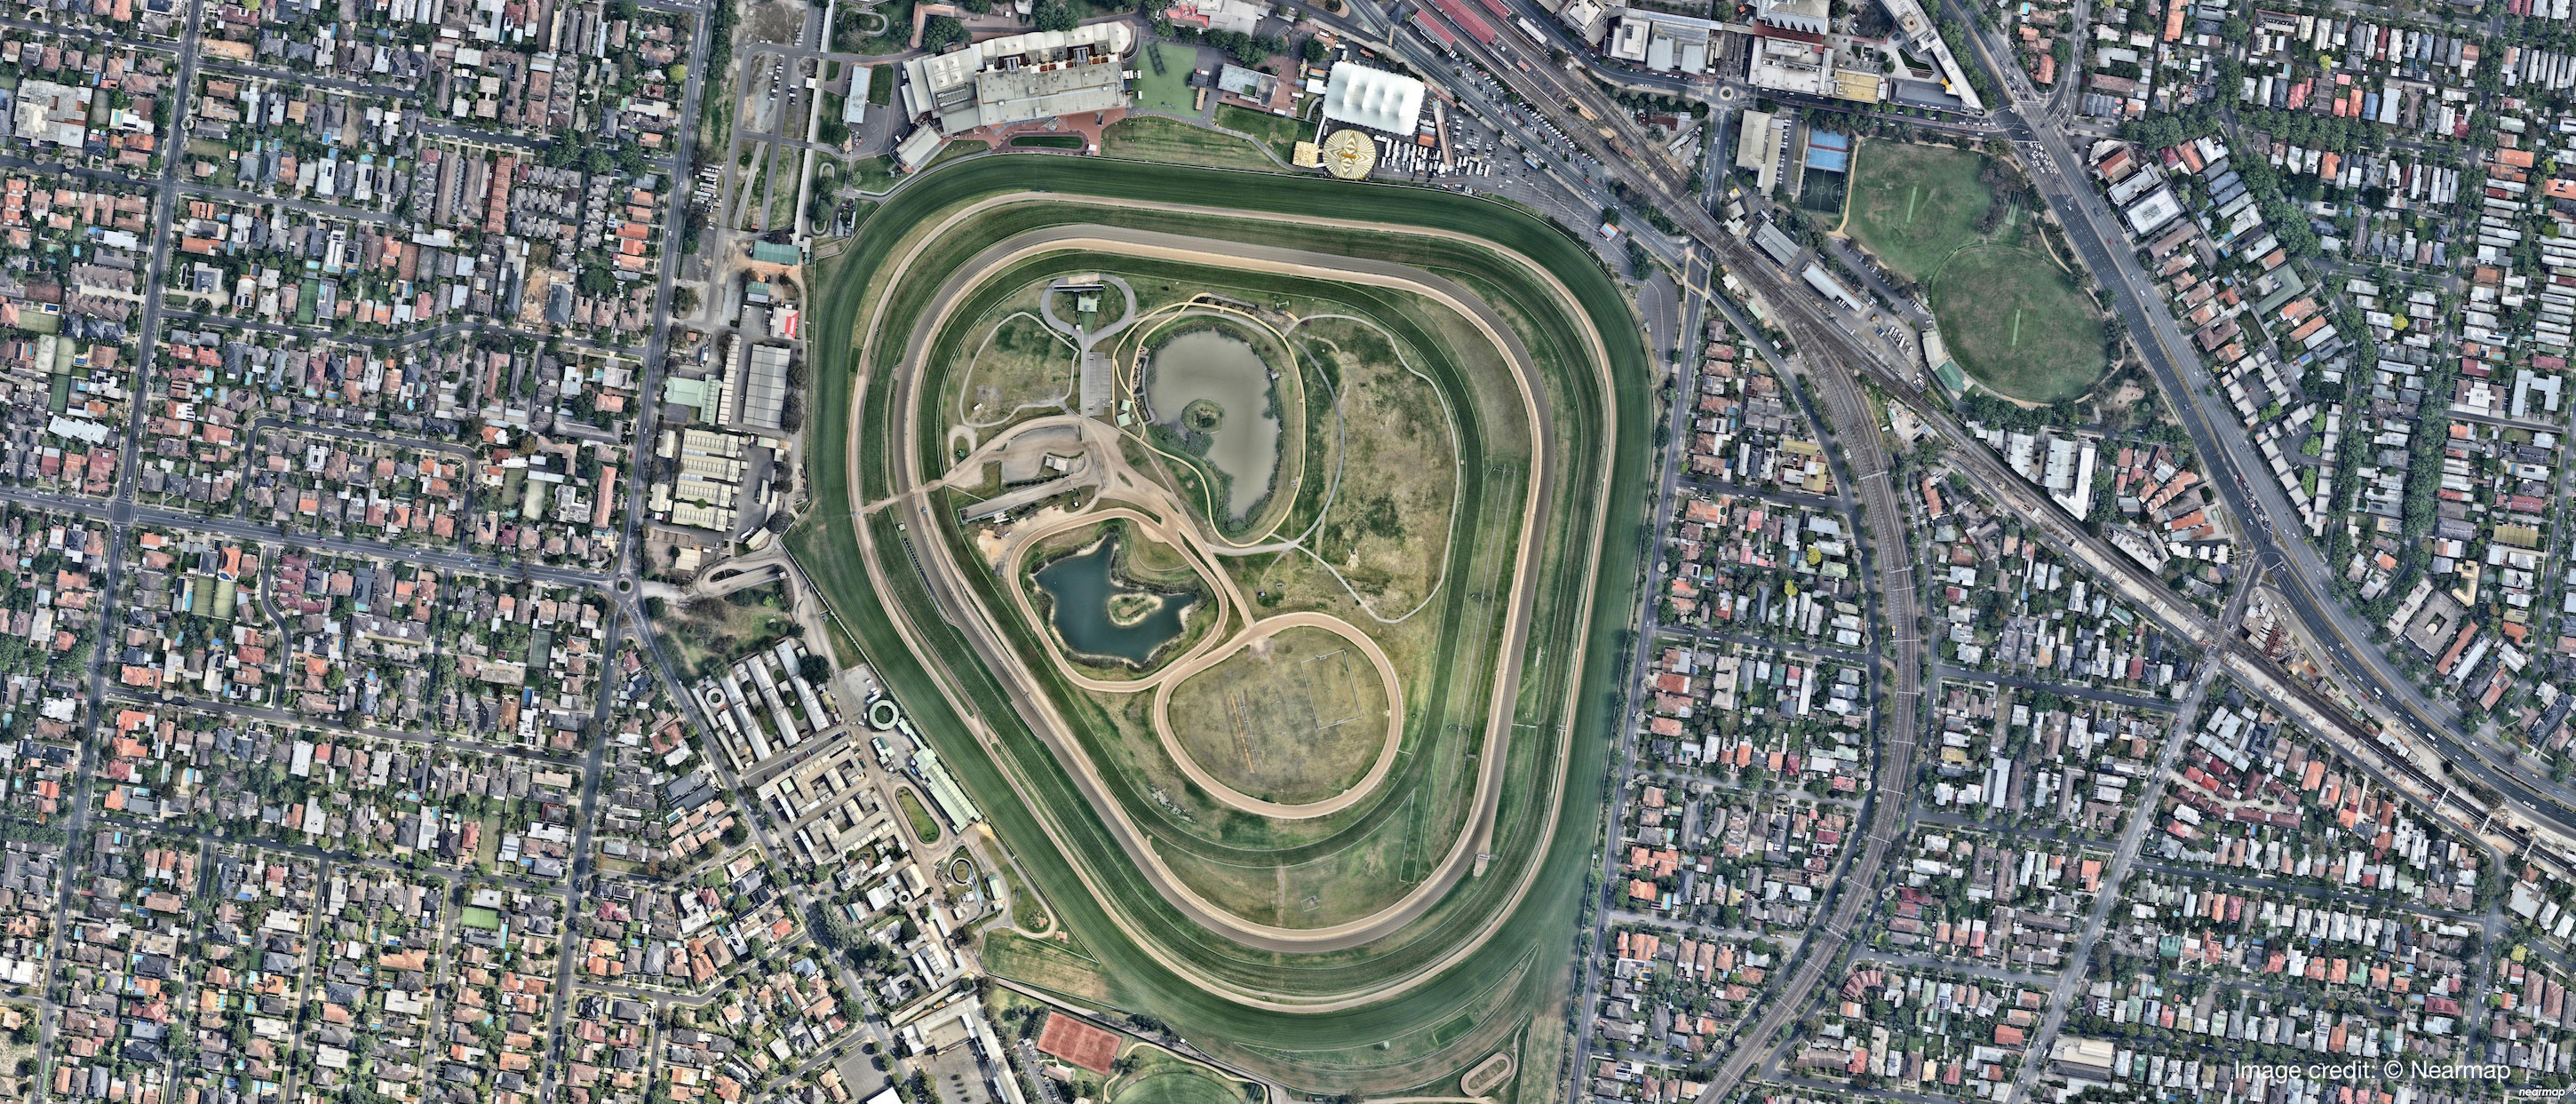 Parking Caulfield Racecourse